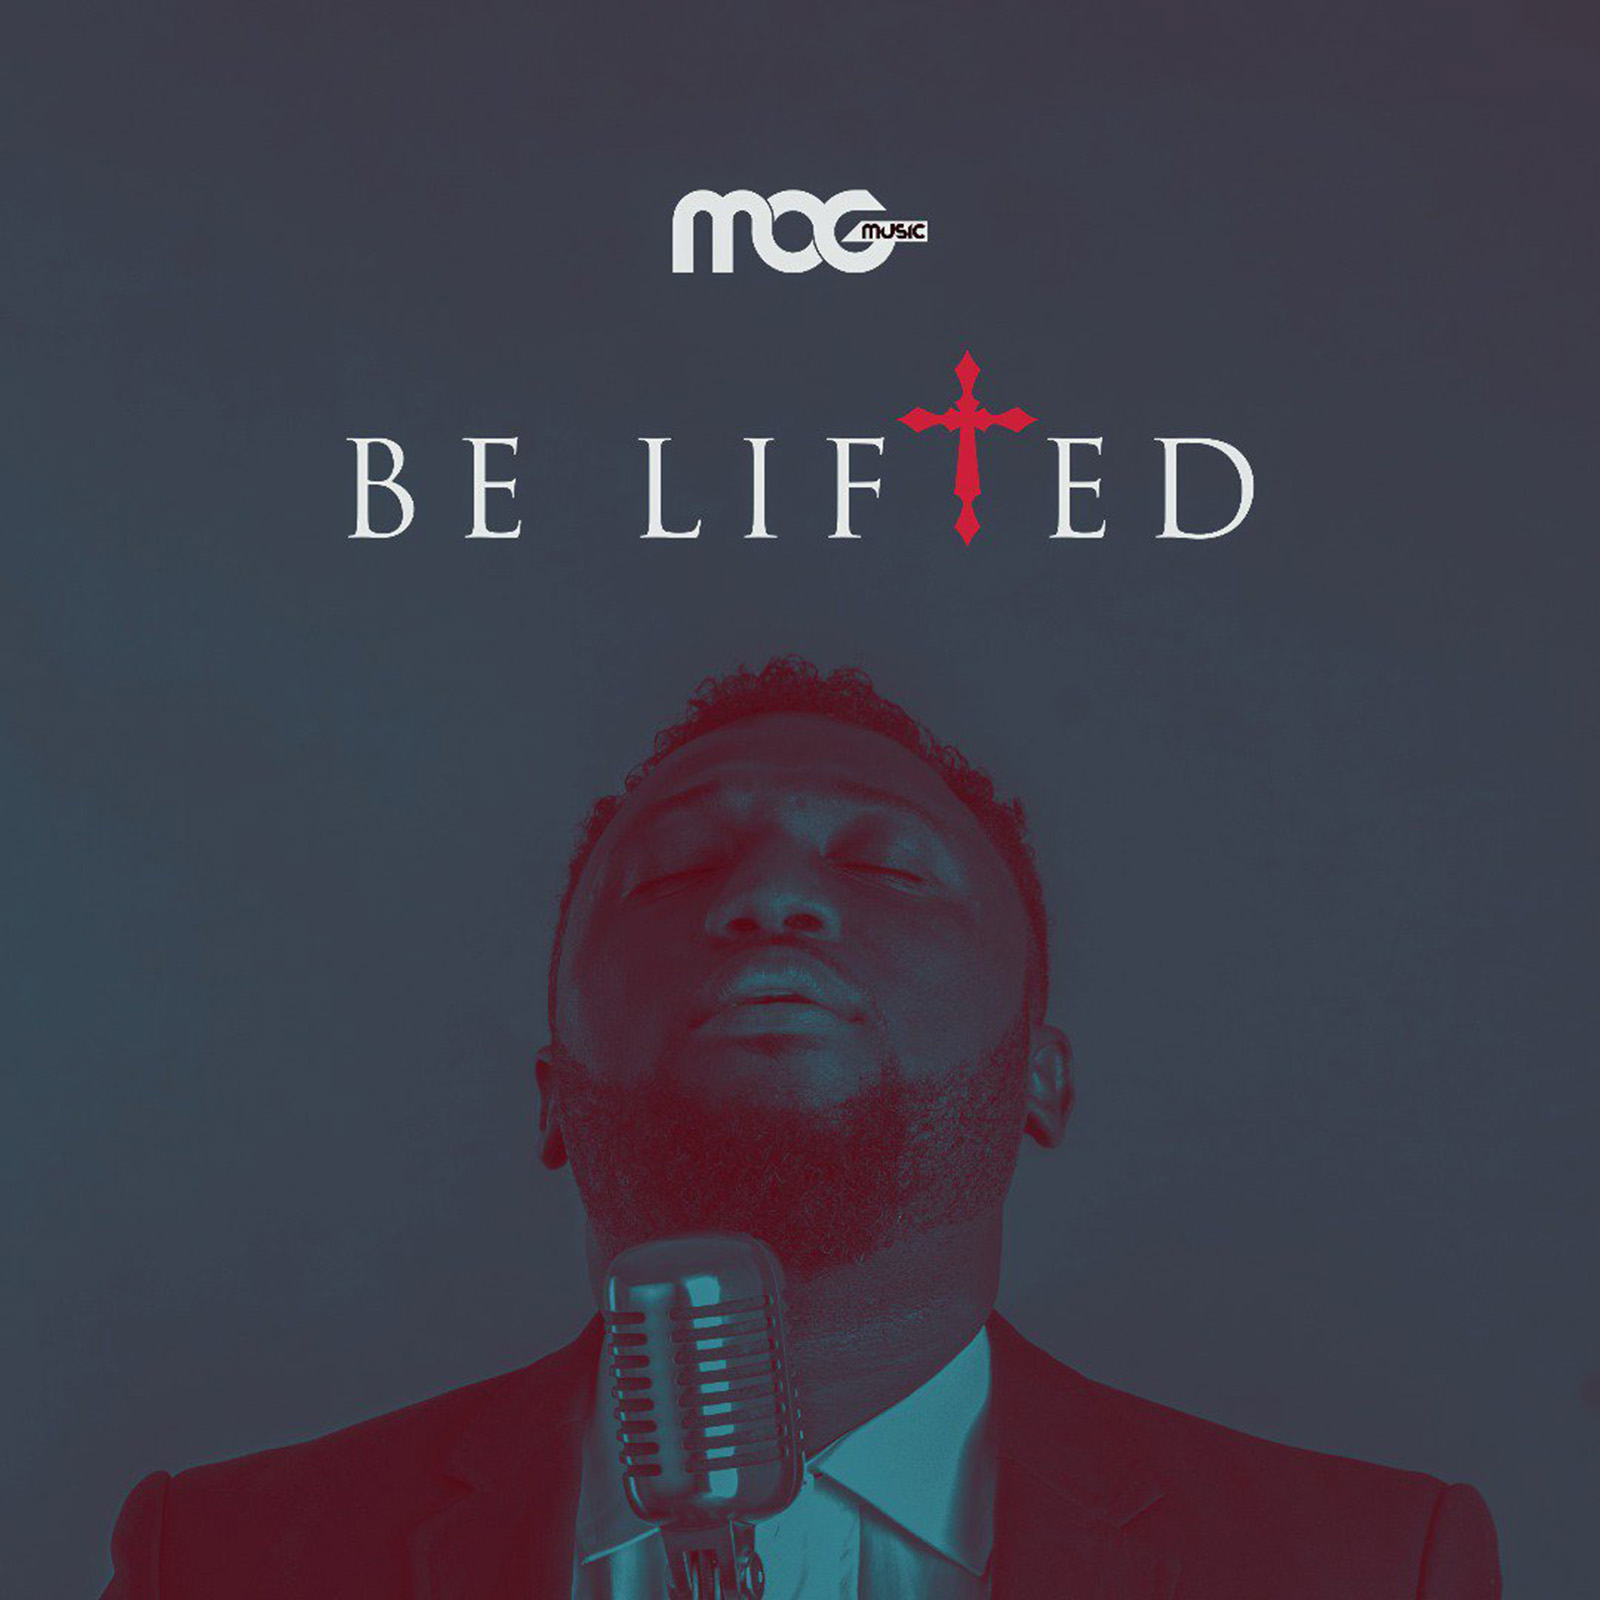 Be Lifted by MOG Music